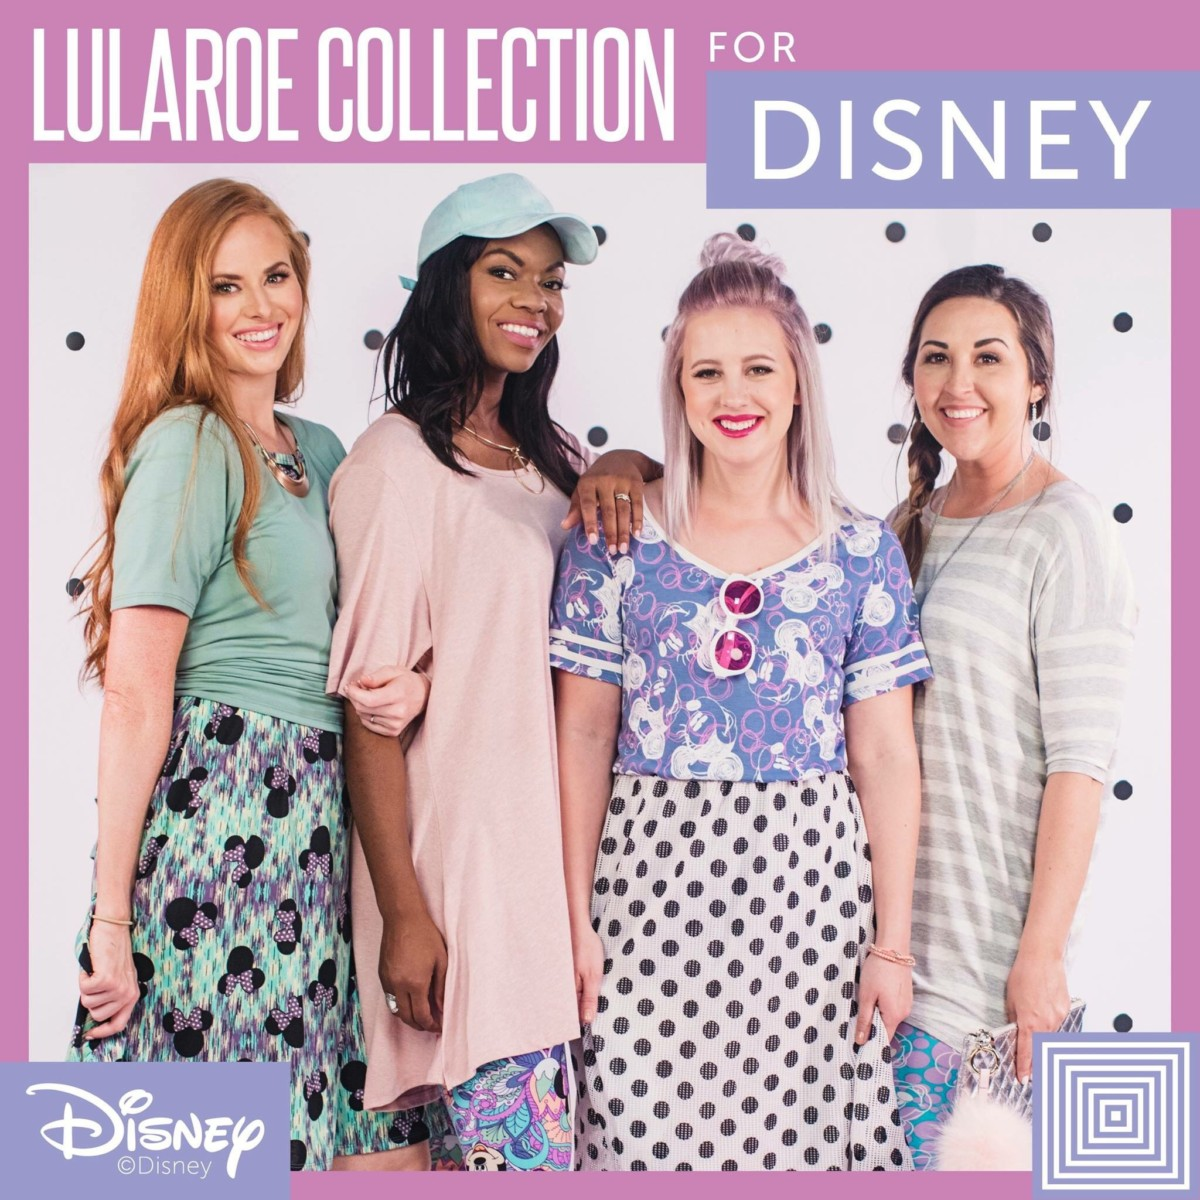 Disney Themed LuLaRoe Clothing Now Available 17